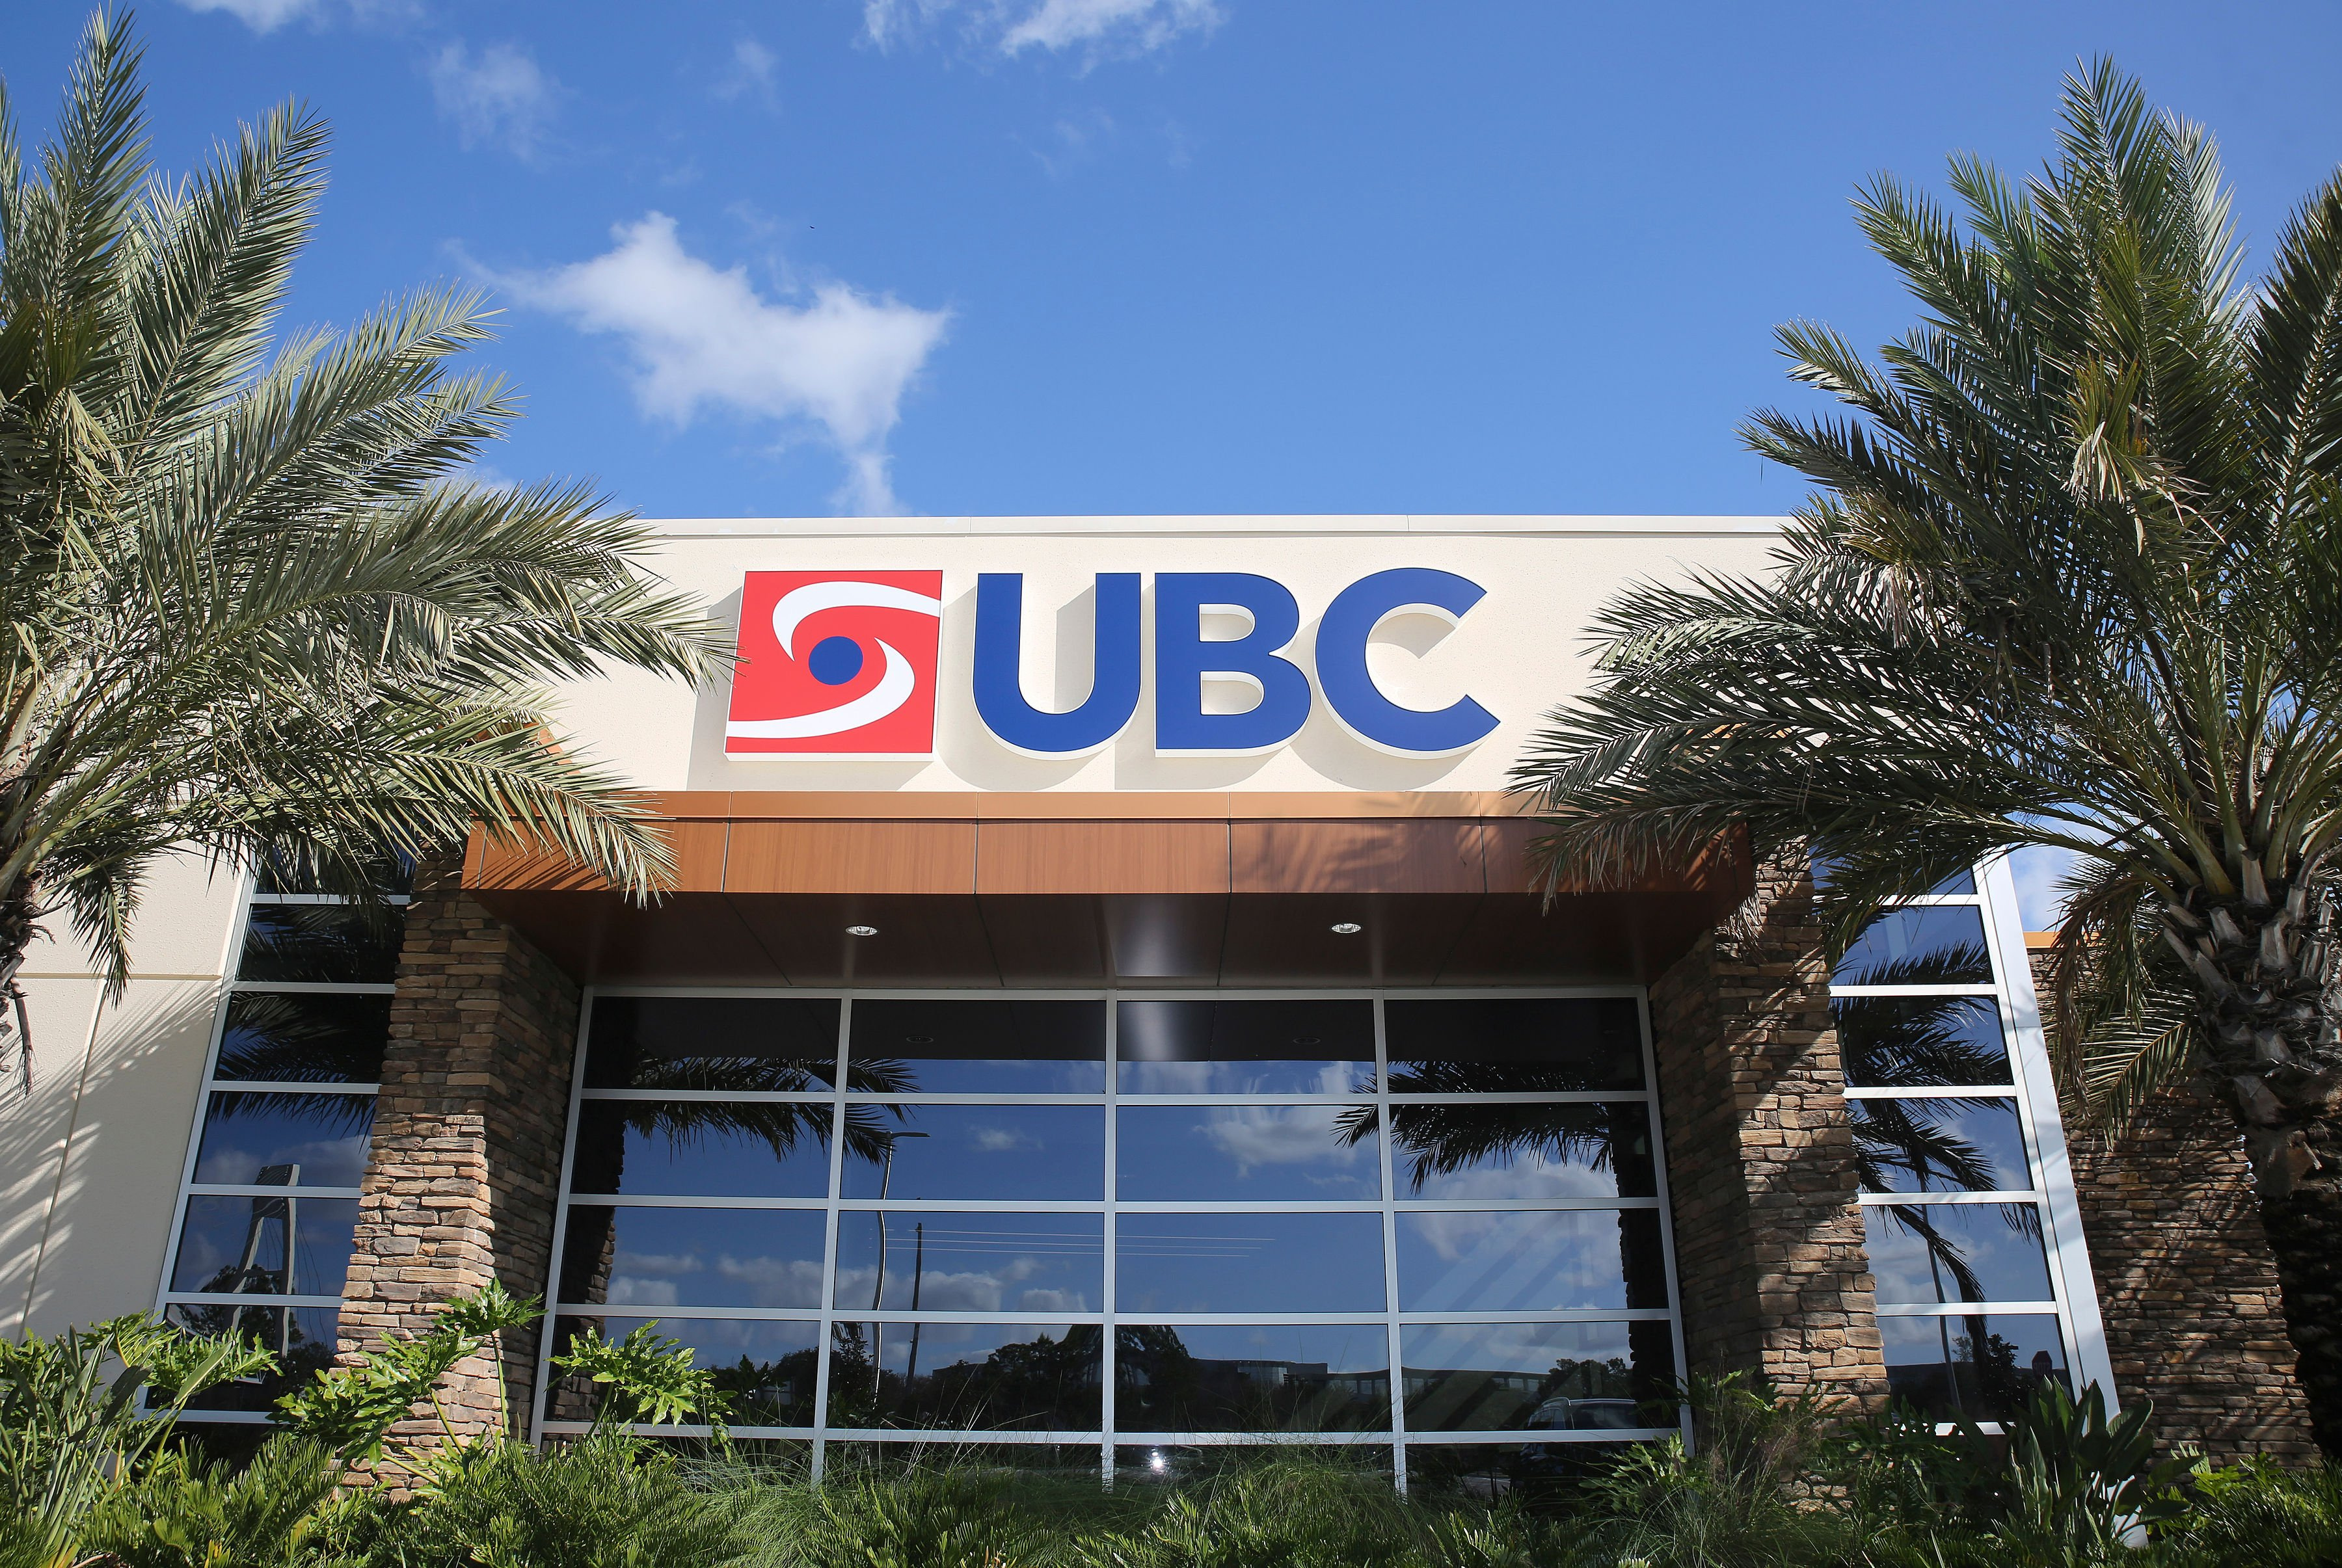 United BioSource LLC (UBC) Opens a New 43,000 Square Foot Facility in Lake Mary, Florida Image